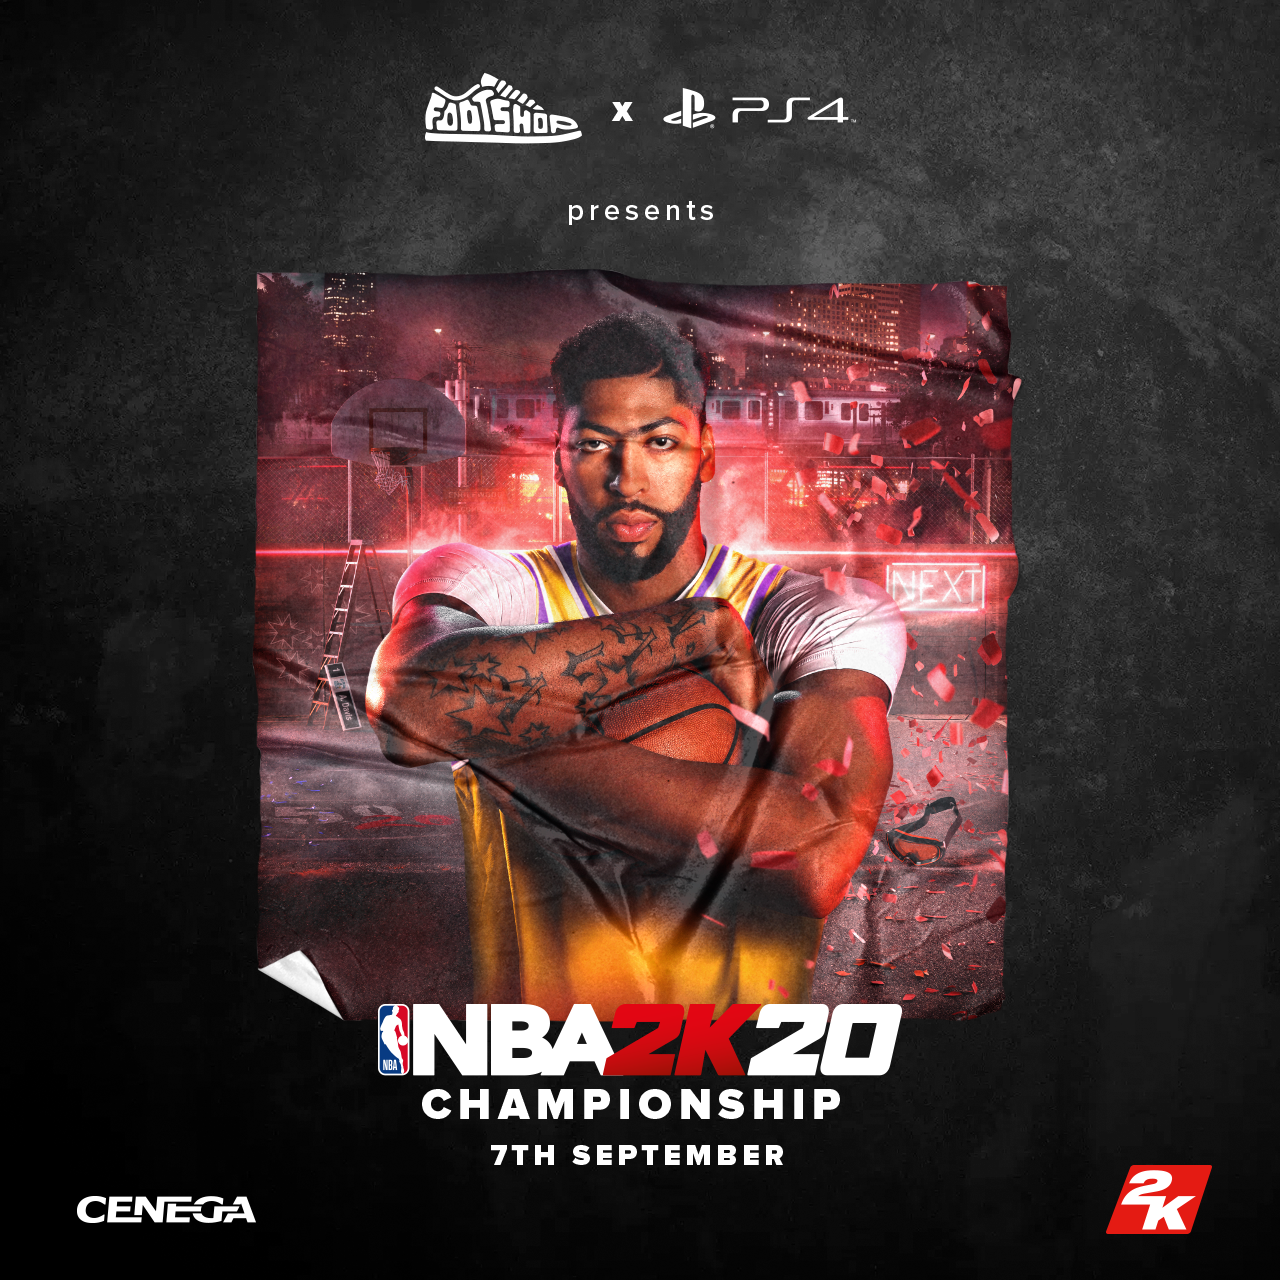 Footshop x PS4 x Cenega presents: NBA2K20 Championship & Launch